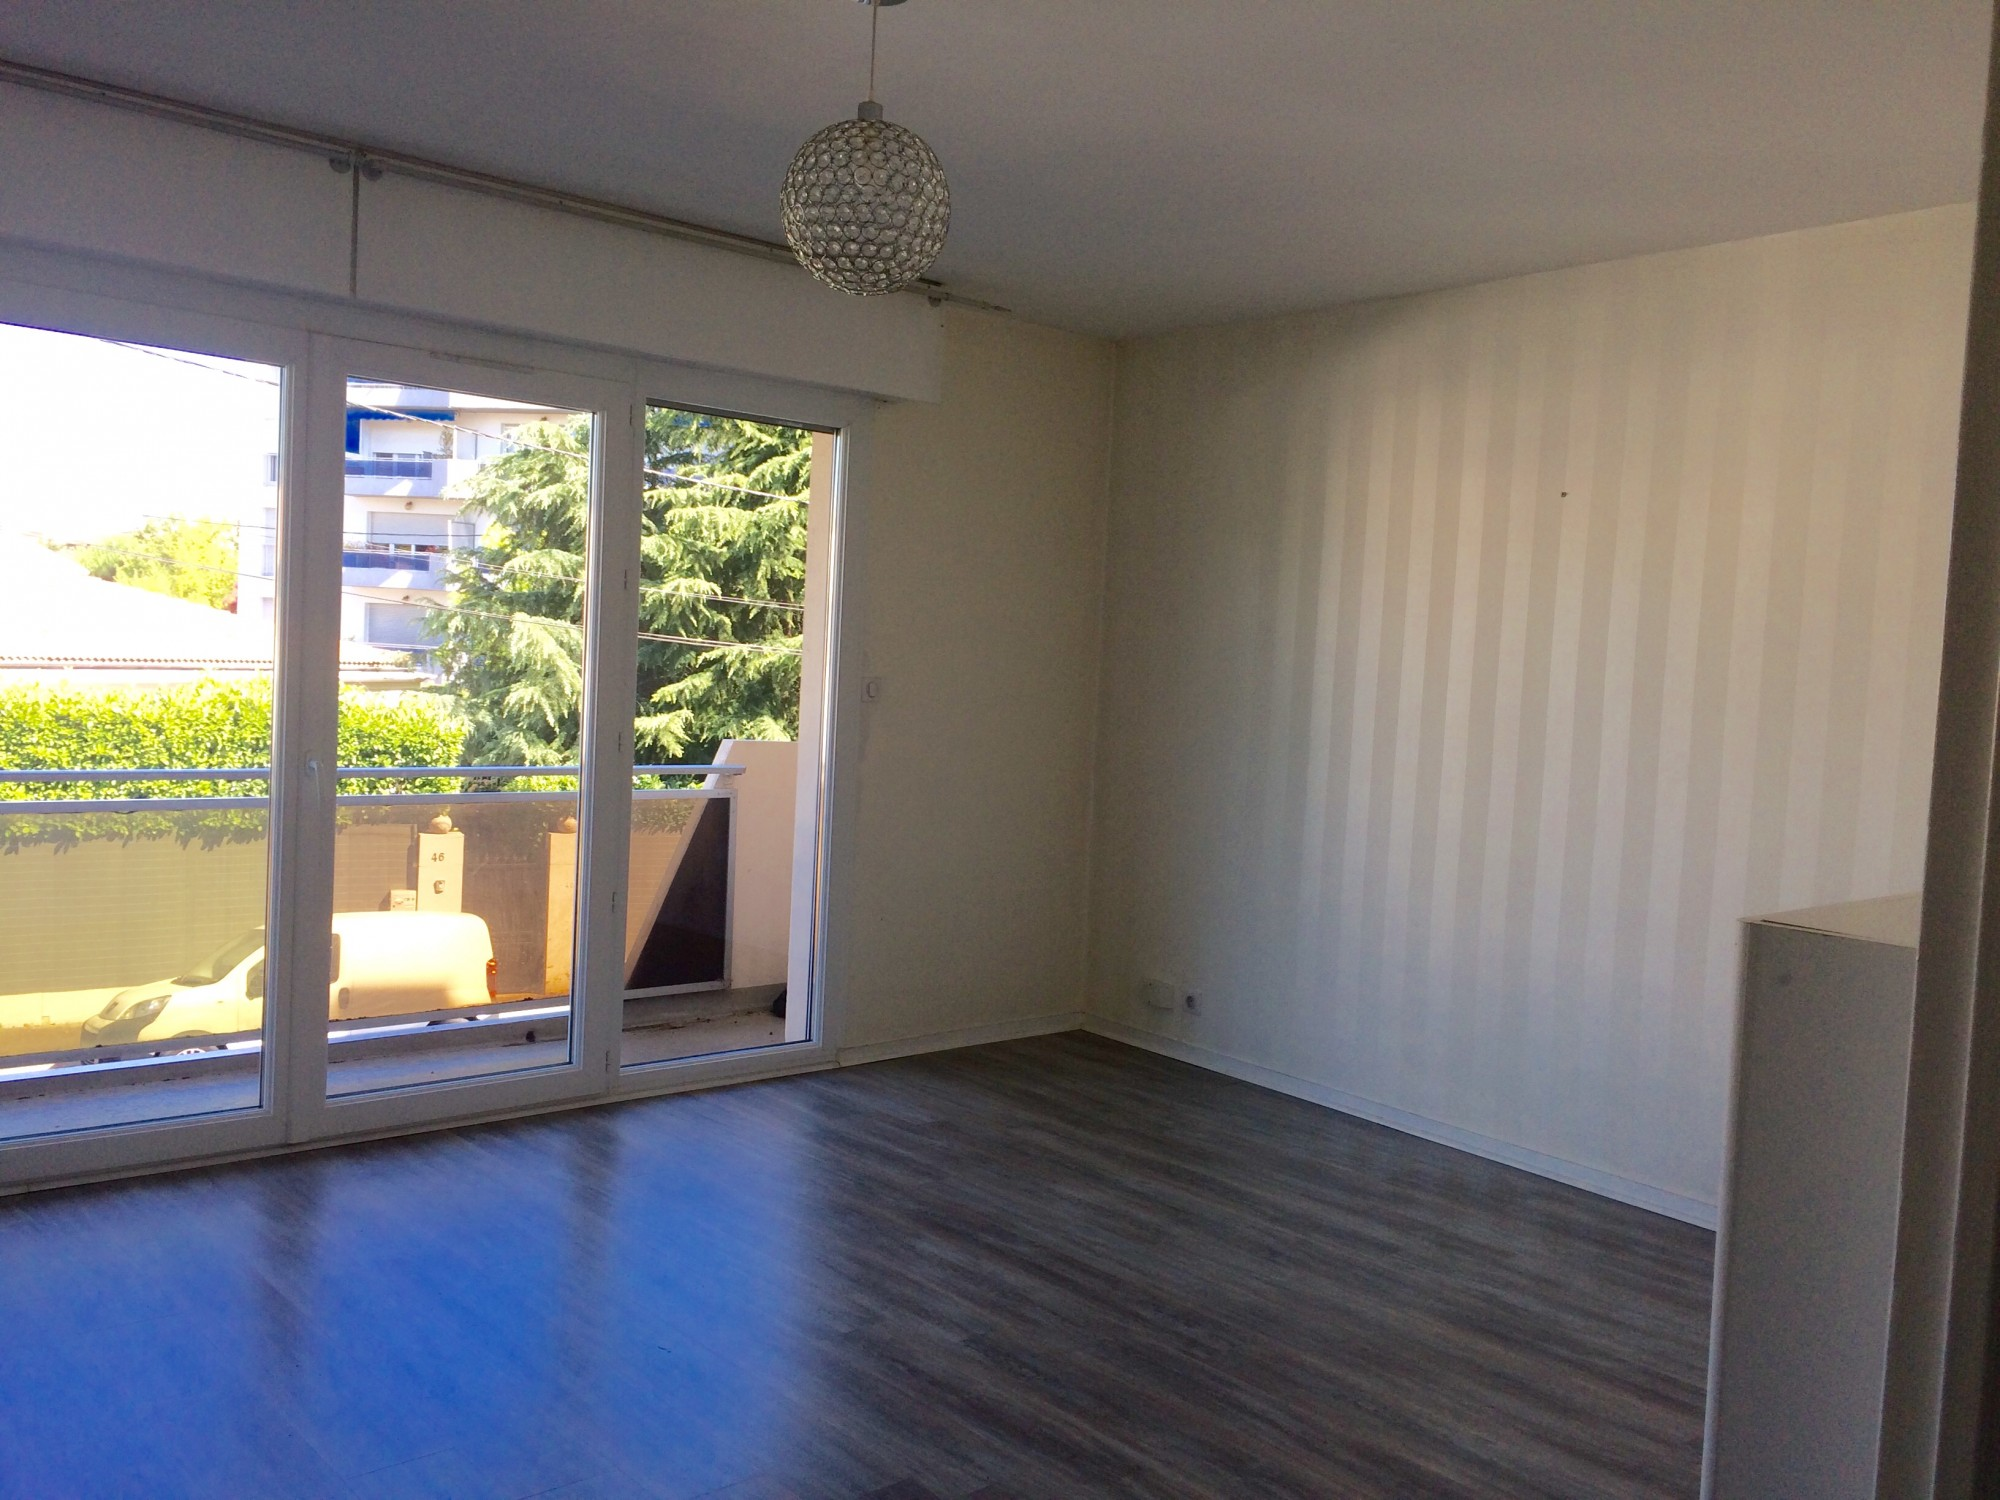 Location appartement t2 t2 f2 bordeaux caud ran bru for Appartement t2 bordeaux location